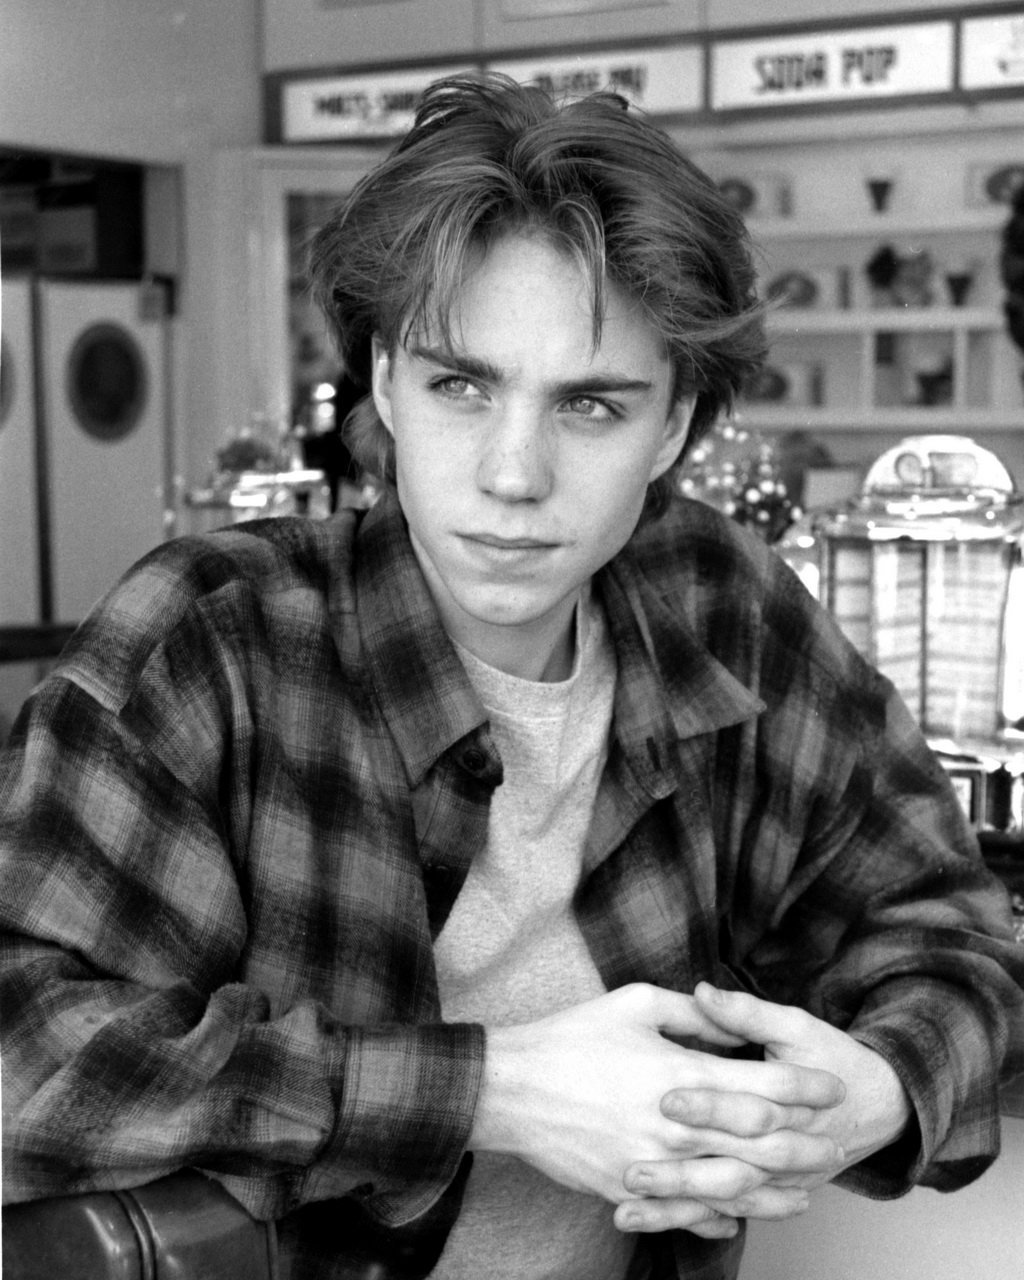 Jonathan Brandis Dec.1993 in a Ventura Blvd diner in Los Angeles | Photo: Wikimedia Commons Images